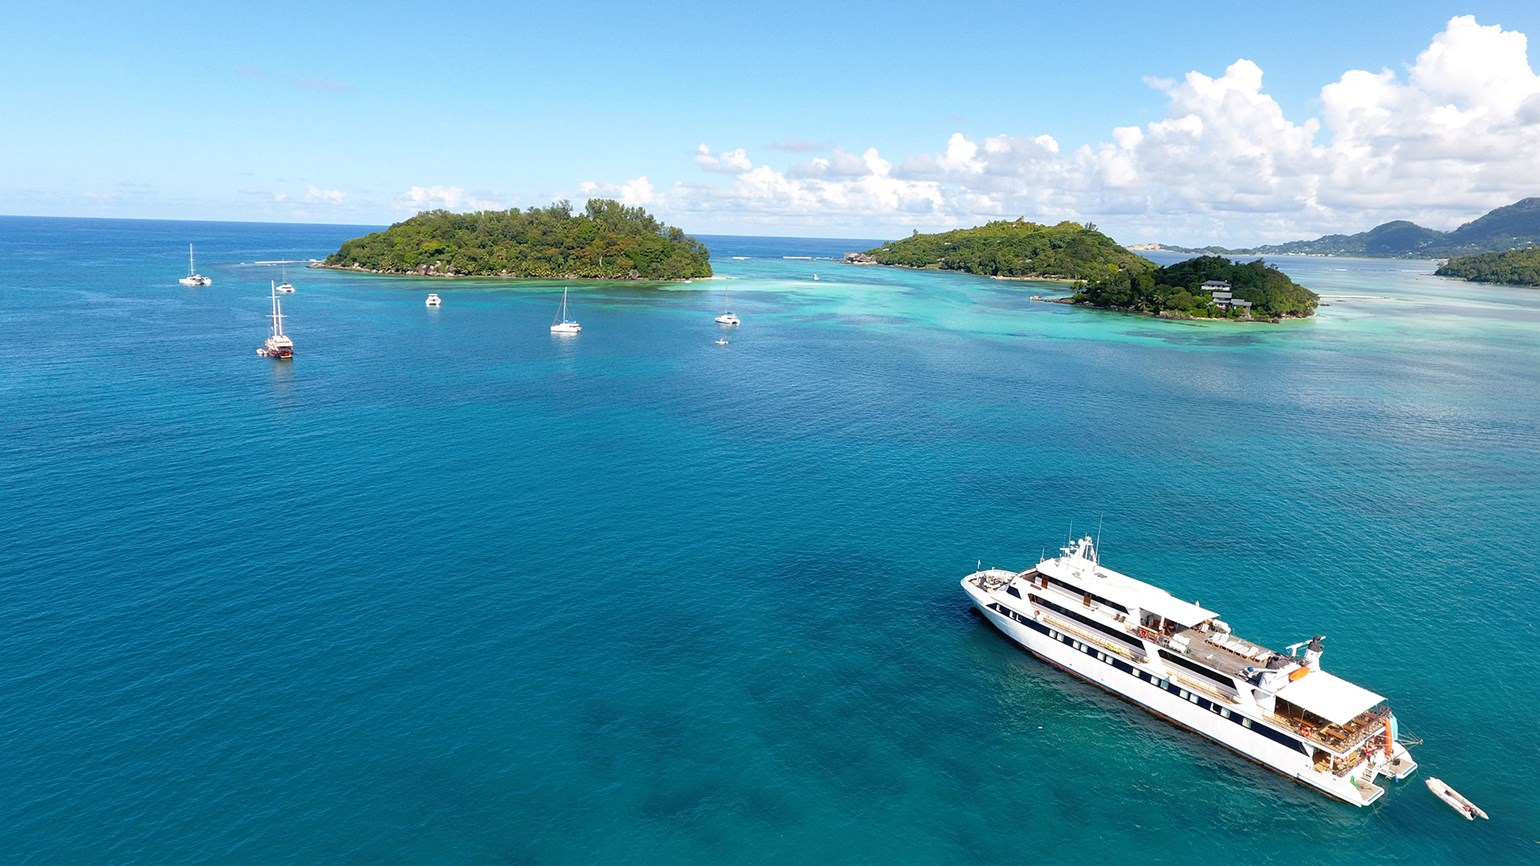 Seychelle Islands cruise, from $350